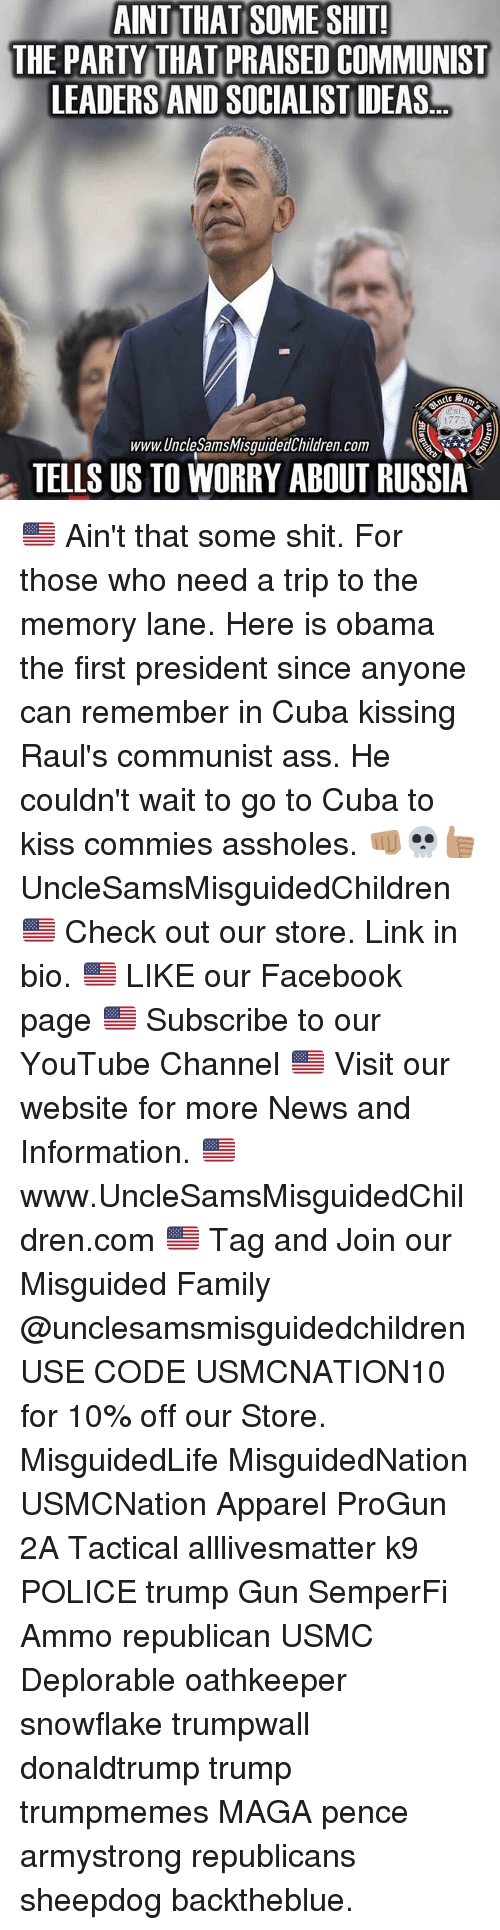 Assholism: AINT THAT SOMESHTI  THE PARTY THAT PRAISED COMMUNIST  LEADERS AND SOCIALISTIDEAS  www.Unclesams SamsMisguidedChildren.com  TELLS US TO WORRY ABOUT RUSSIA 🇺🇸 Ain't that some shit. For those who need a trip to the memory lane. Here is obama the first president since anyone can remember in Cuba kissing Raul's communist ass. He couldn't wait to go to Cuba to kiss commies assholes. 👊🏽💀👍🏽 UncleSamsMisguidedChildren 🇺🇸 Check out our store. Link in bio. 🇺🇸 LIKE our Facebook page 🇺🇸 Subscribe to our YouTube Channel 🇺🇸 Visit our website for more News and Information. 🇺🇸 www.UncleSamsMisguidedChildren.com 🇺🇸 Tag and Join our Misguided Family @unclesamsmisguidedchildren USE CODE USMCNATION10 for 10% off our Store. MisguidedLife MisguidedNation USMCNation Apparel ProGun 2A Tactical alllivesmatter k9 POLICE trump Gun SemperFi Ammo republican USMC Deplorable oathkeeper snowflake trumpwall donaldtrump trump trumpmemes MAGA pence armystrong republicans sheepdog backtheblue.